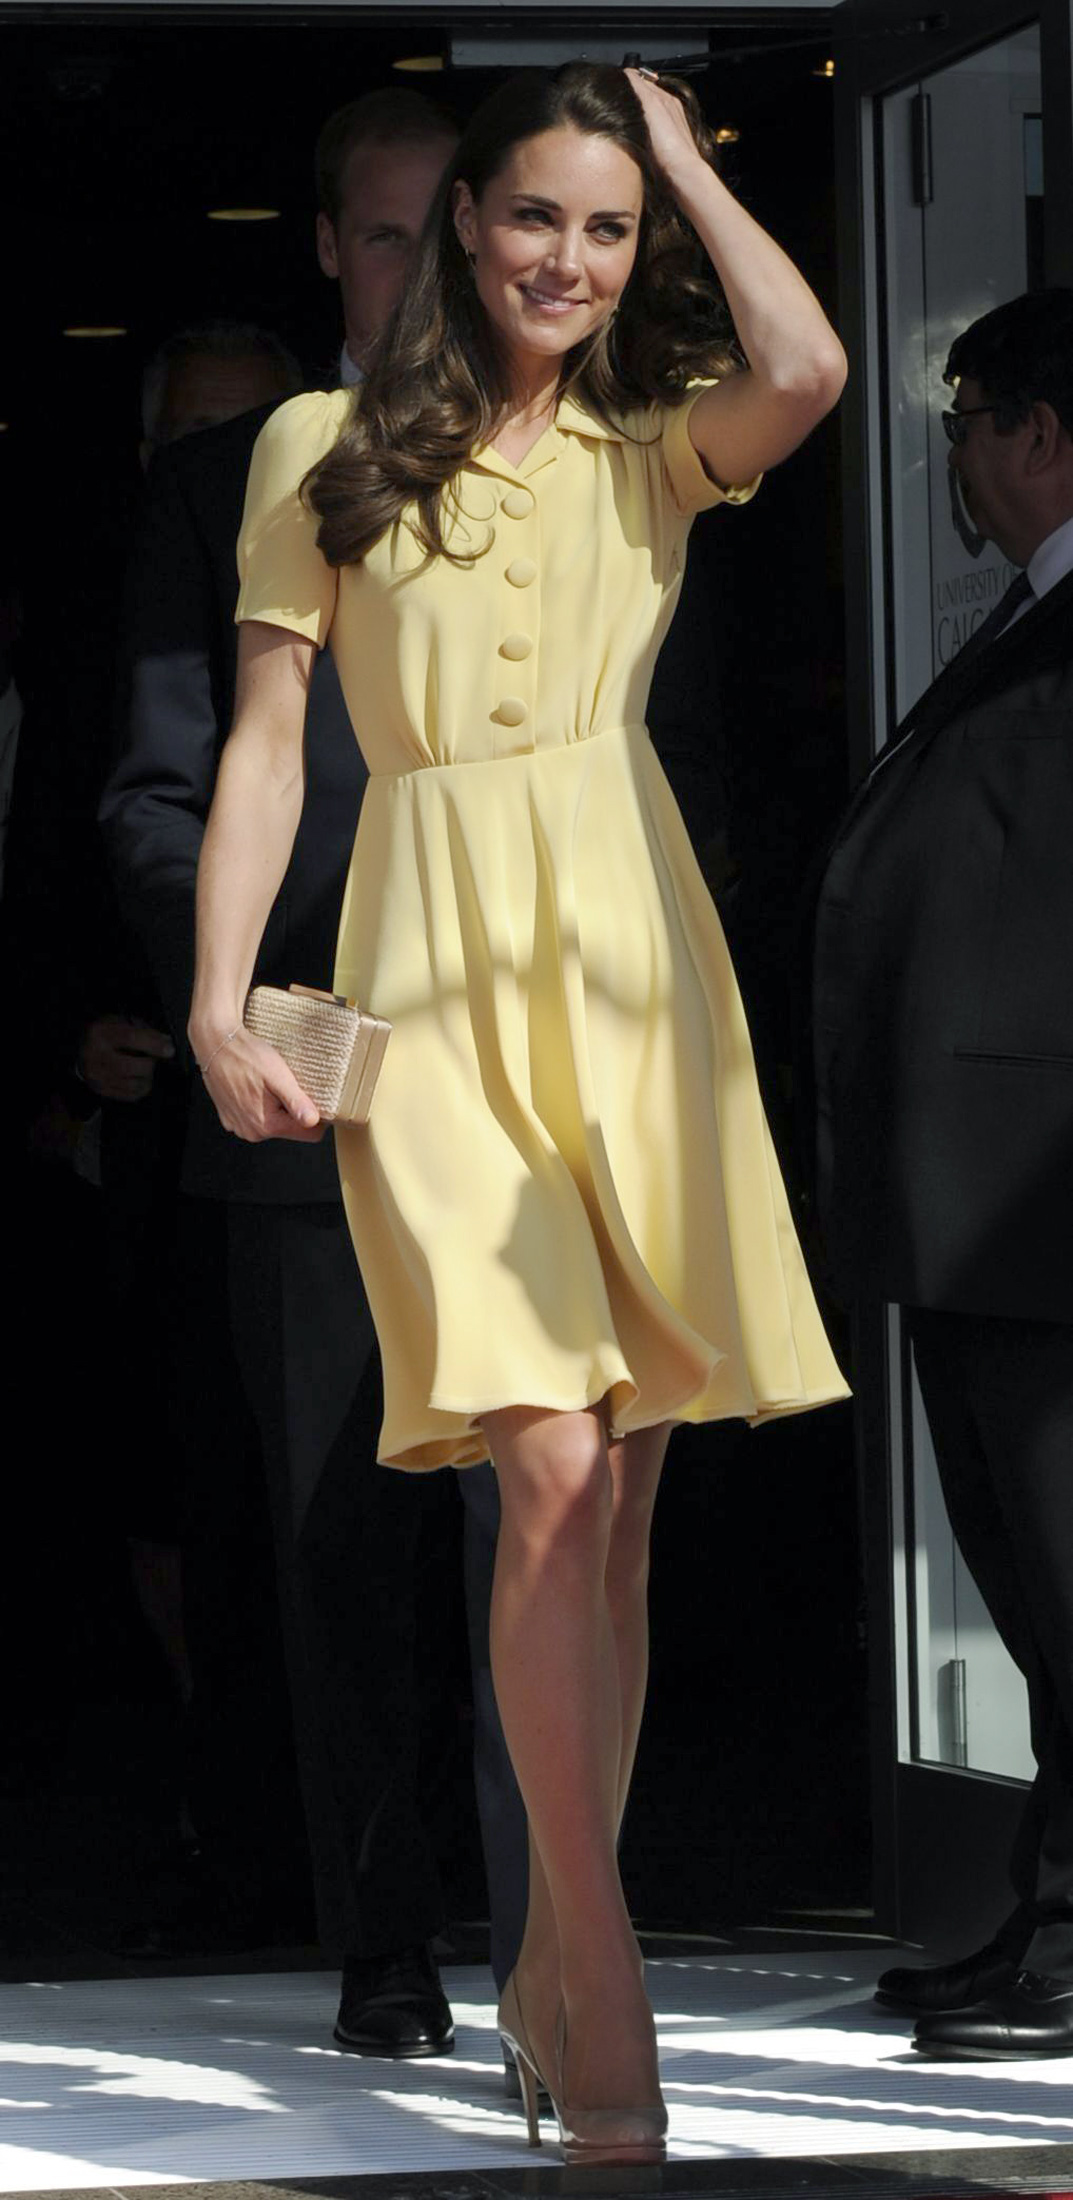 <strong>Sunny Side Up</strong>                                   The Duchess arrived in Calgary on July 7, 2011, in a bright yellow dress. The color was a surprising choice for Middleton, who typically sticks to navy and neutrals.